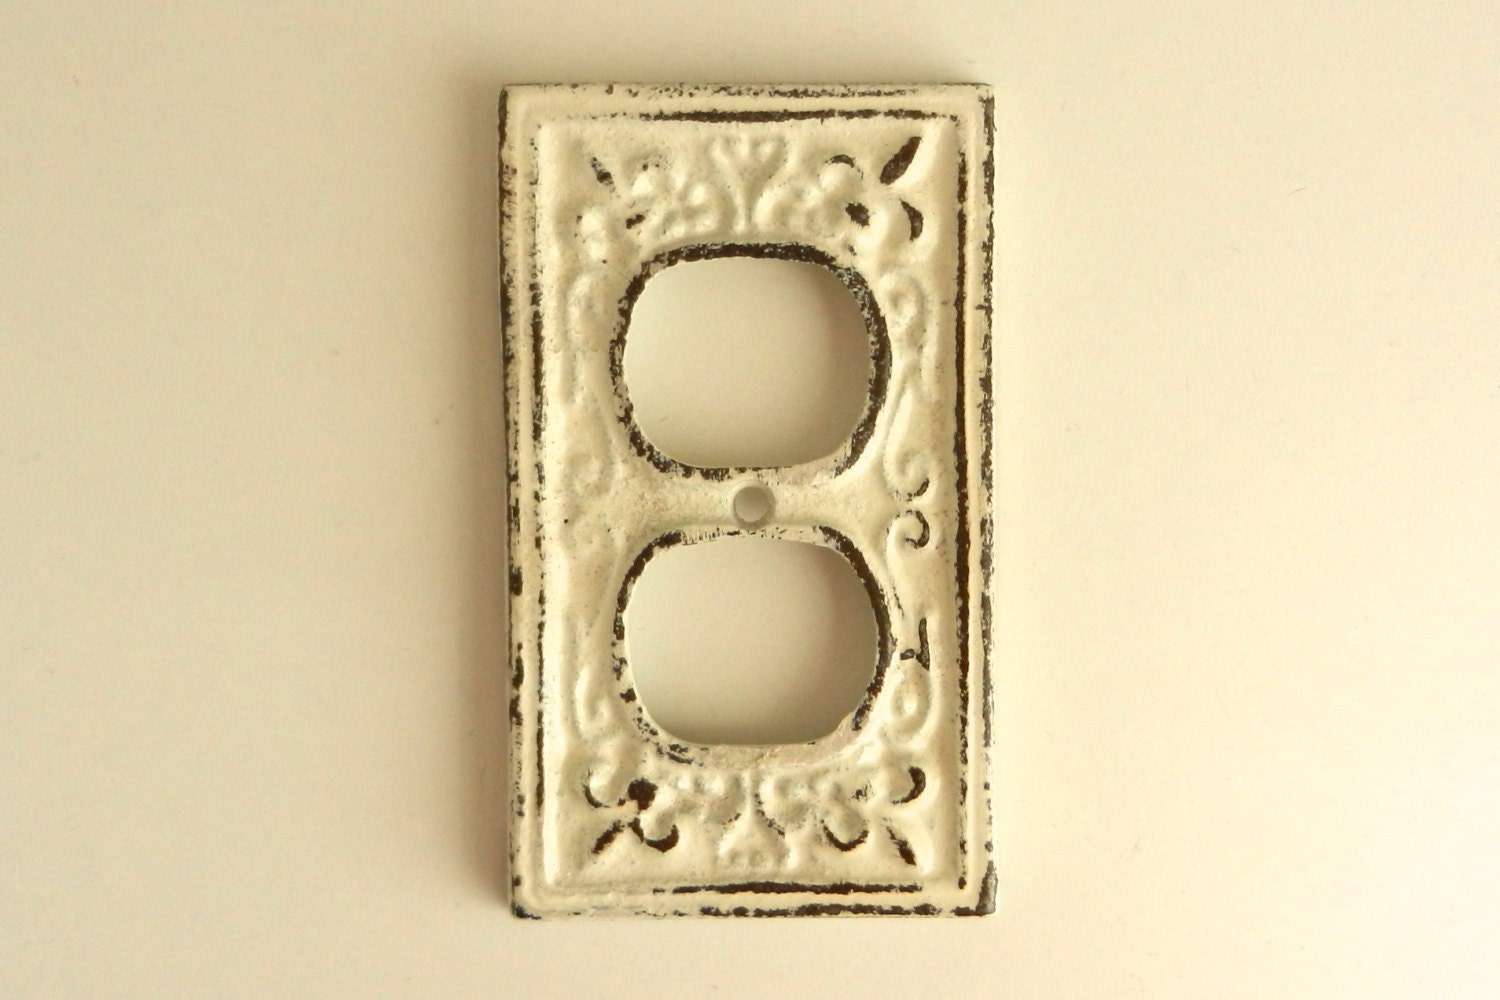 Electrical Wall Plates : Electrical outlet cover decorative wall plate french